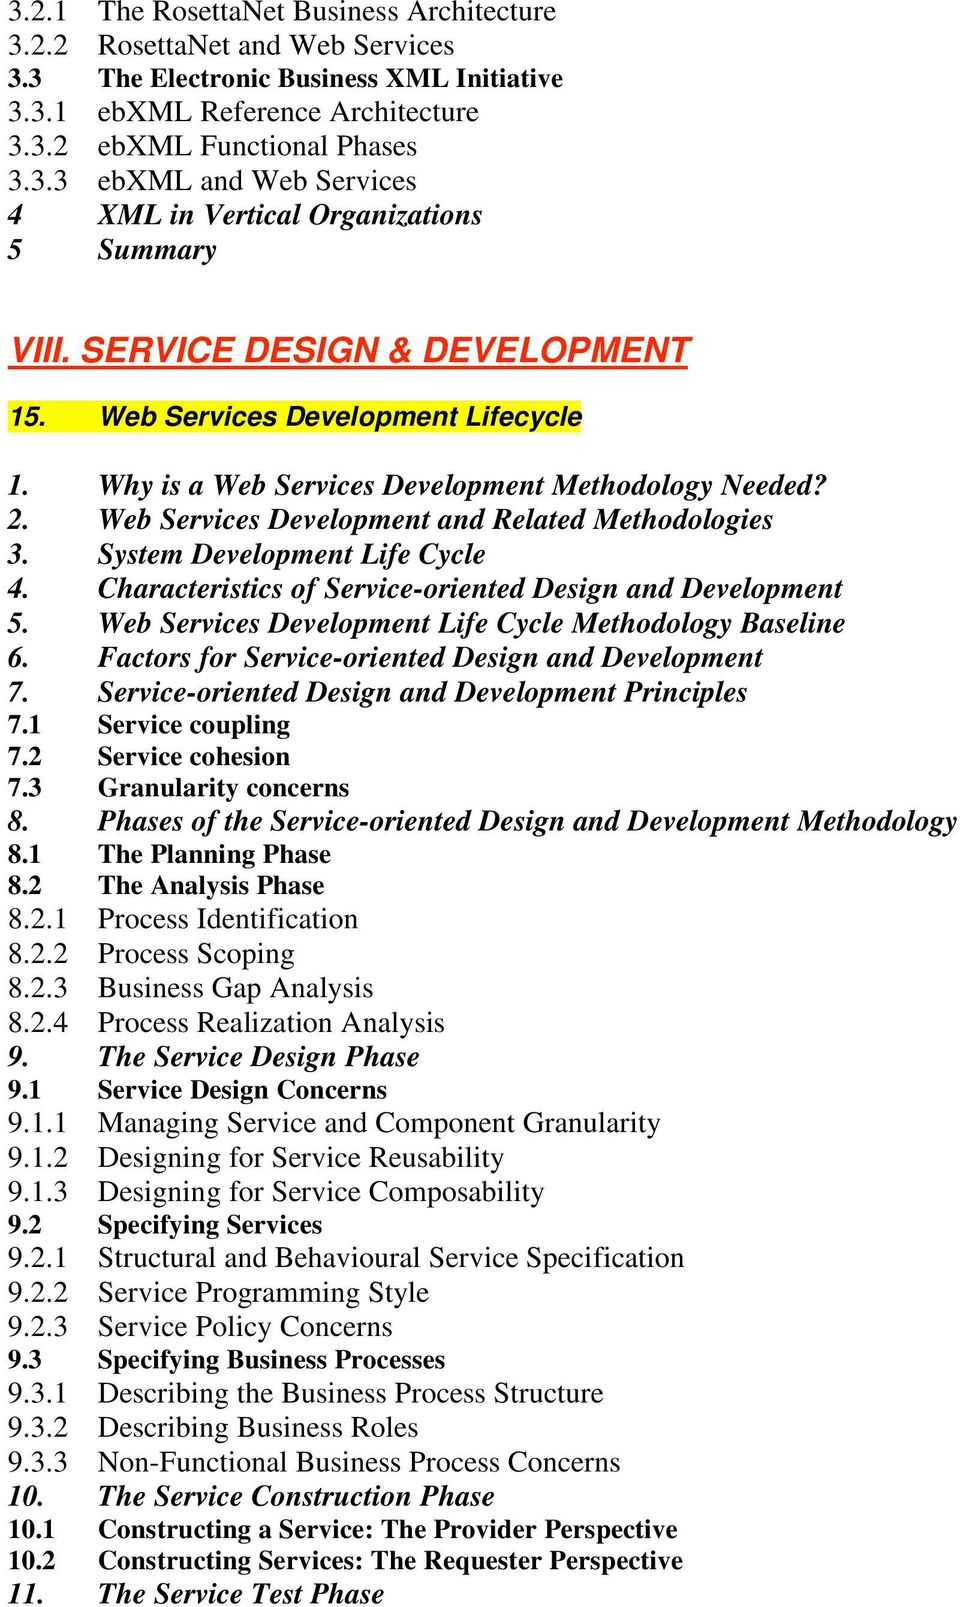 System Development Life Cycle 4. Characteristics of Service-oriented Design and Development 5. Web Services Development Life Cycle Methodology Baseline 6.